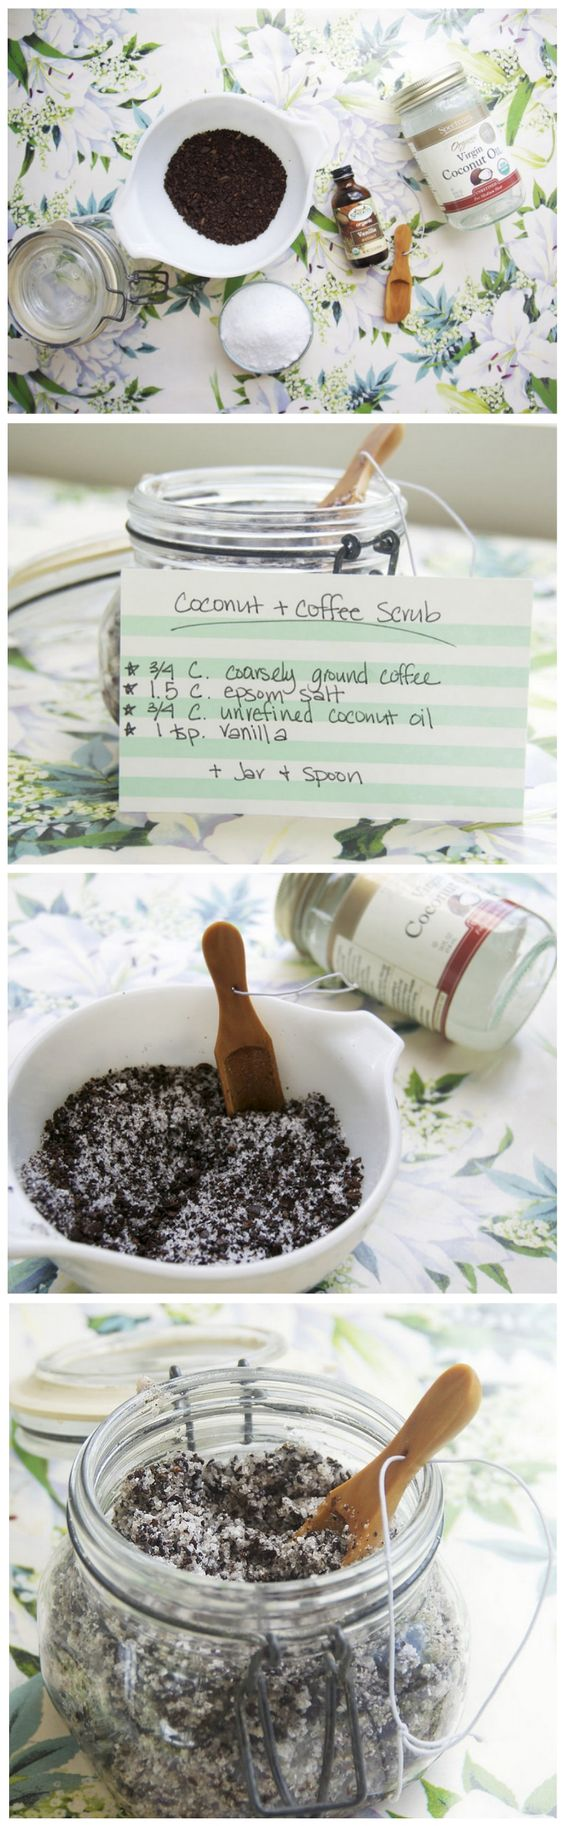 The kind of scrub you DO want! Coffee, coconut oil, and a hint of vanilla make this scrub perfect for summer skincare! #DIY